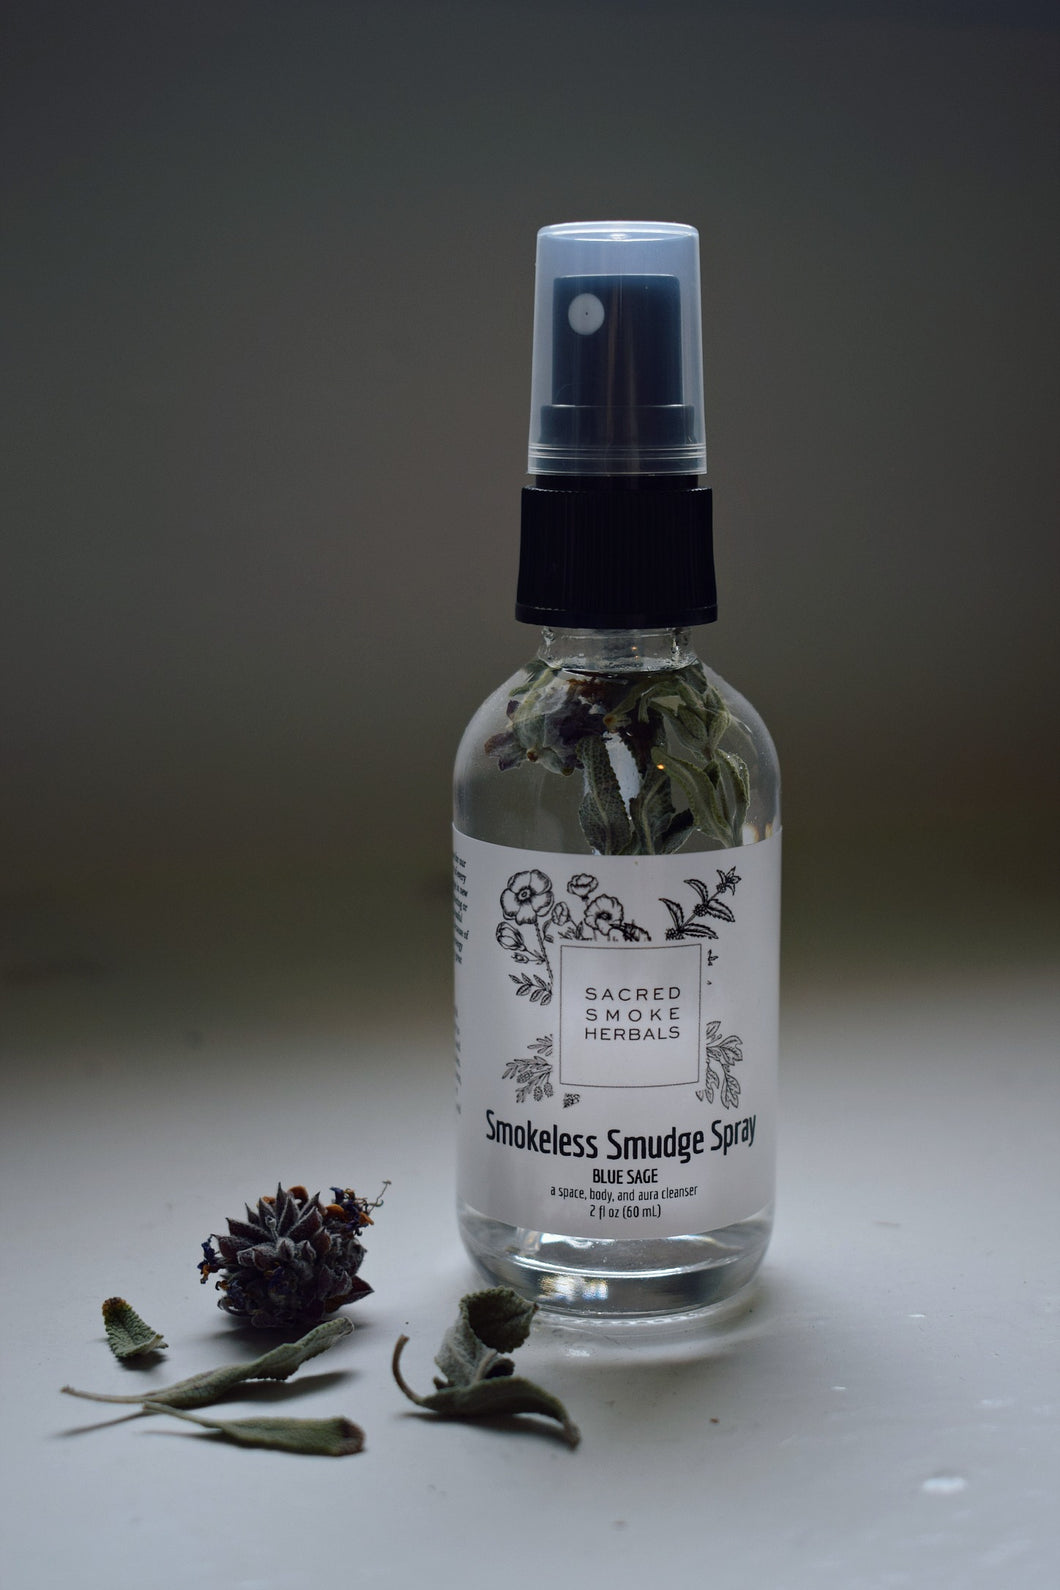 BLUE SAGE SMOKELESS SMUDGE SPRAY